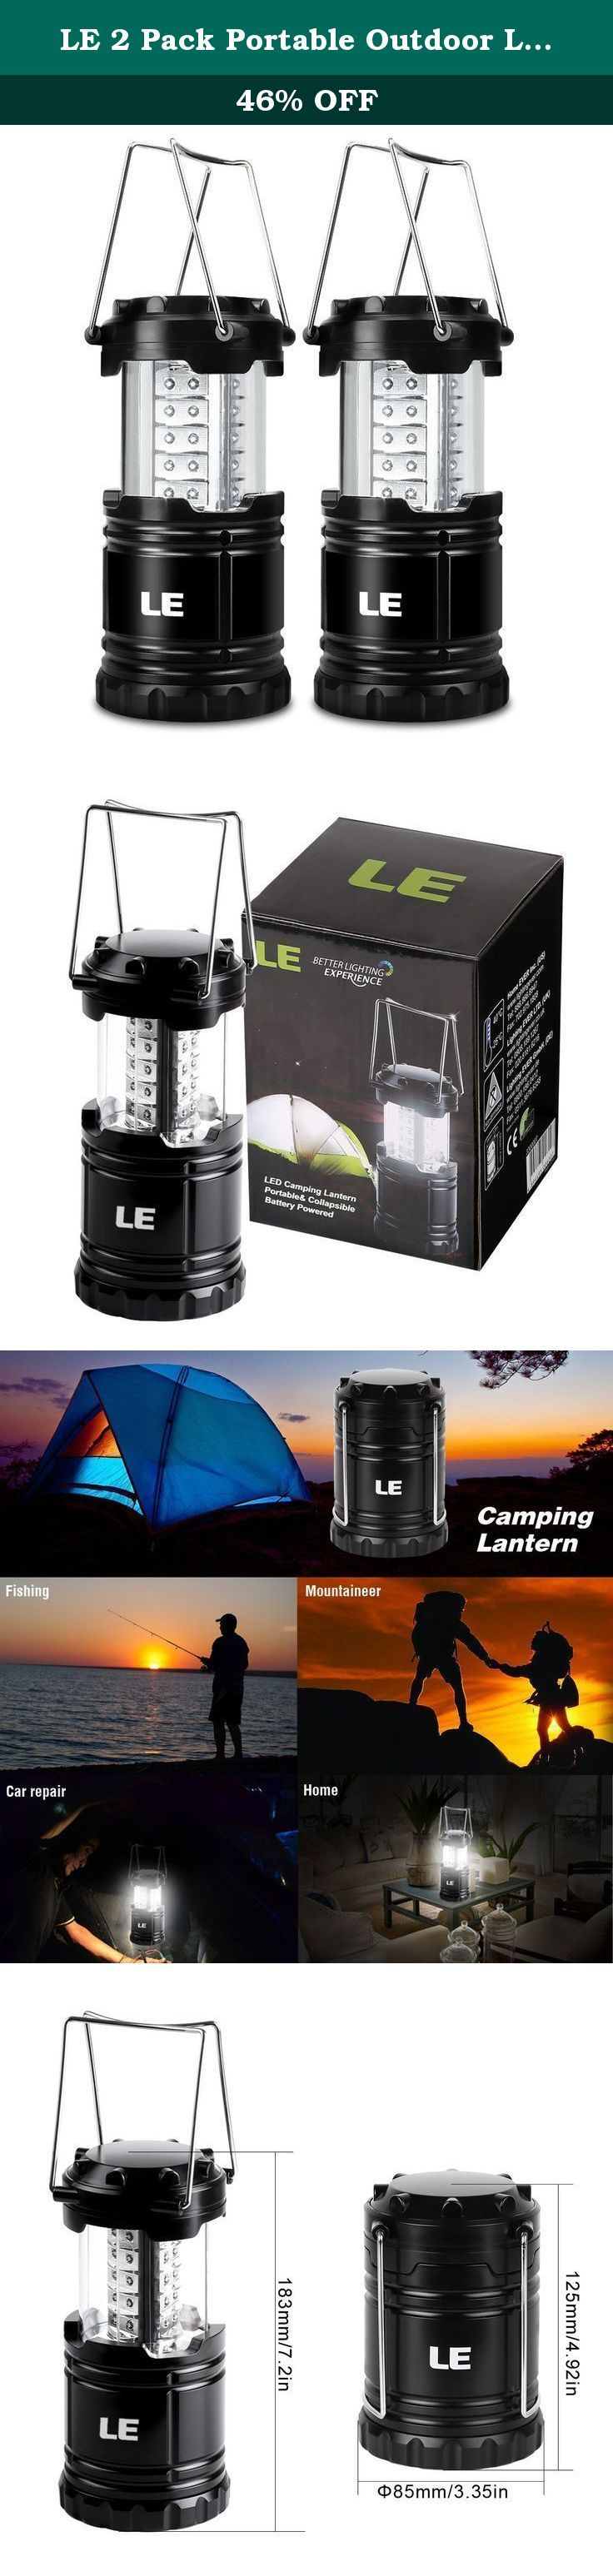 LE 2 Pack Portable Outdoor LED Camping Lantern, 30 LEDs, Battery Powered, Water Resistant, Home Garden Camping Lanterns for Hiking, Emergencies, Hurricanes (Black, Collapsible). Pack of 2 Units Flexible & Adjustable You don't have to find a button to press in the dark, all by a pulling to turn on/off the light. You can pull it up and it turns on, push it back down and it turns off or adjust the amount of light by how much you pull it up. Space saving Being collapsible, this little camping...